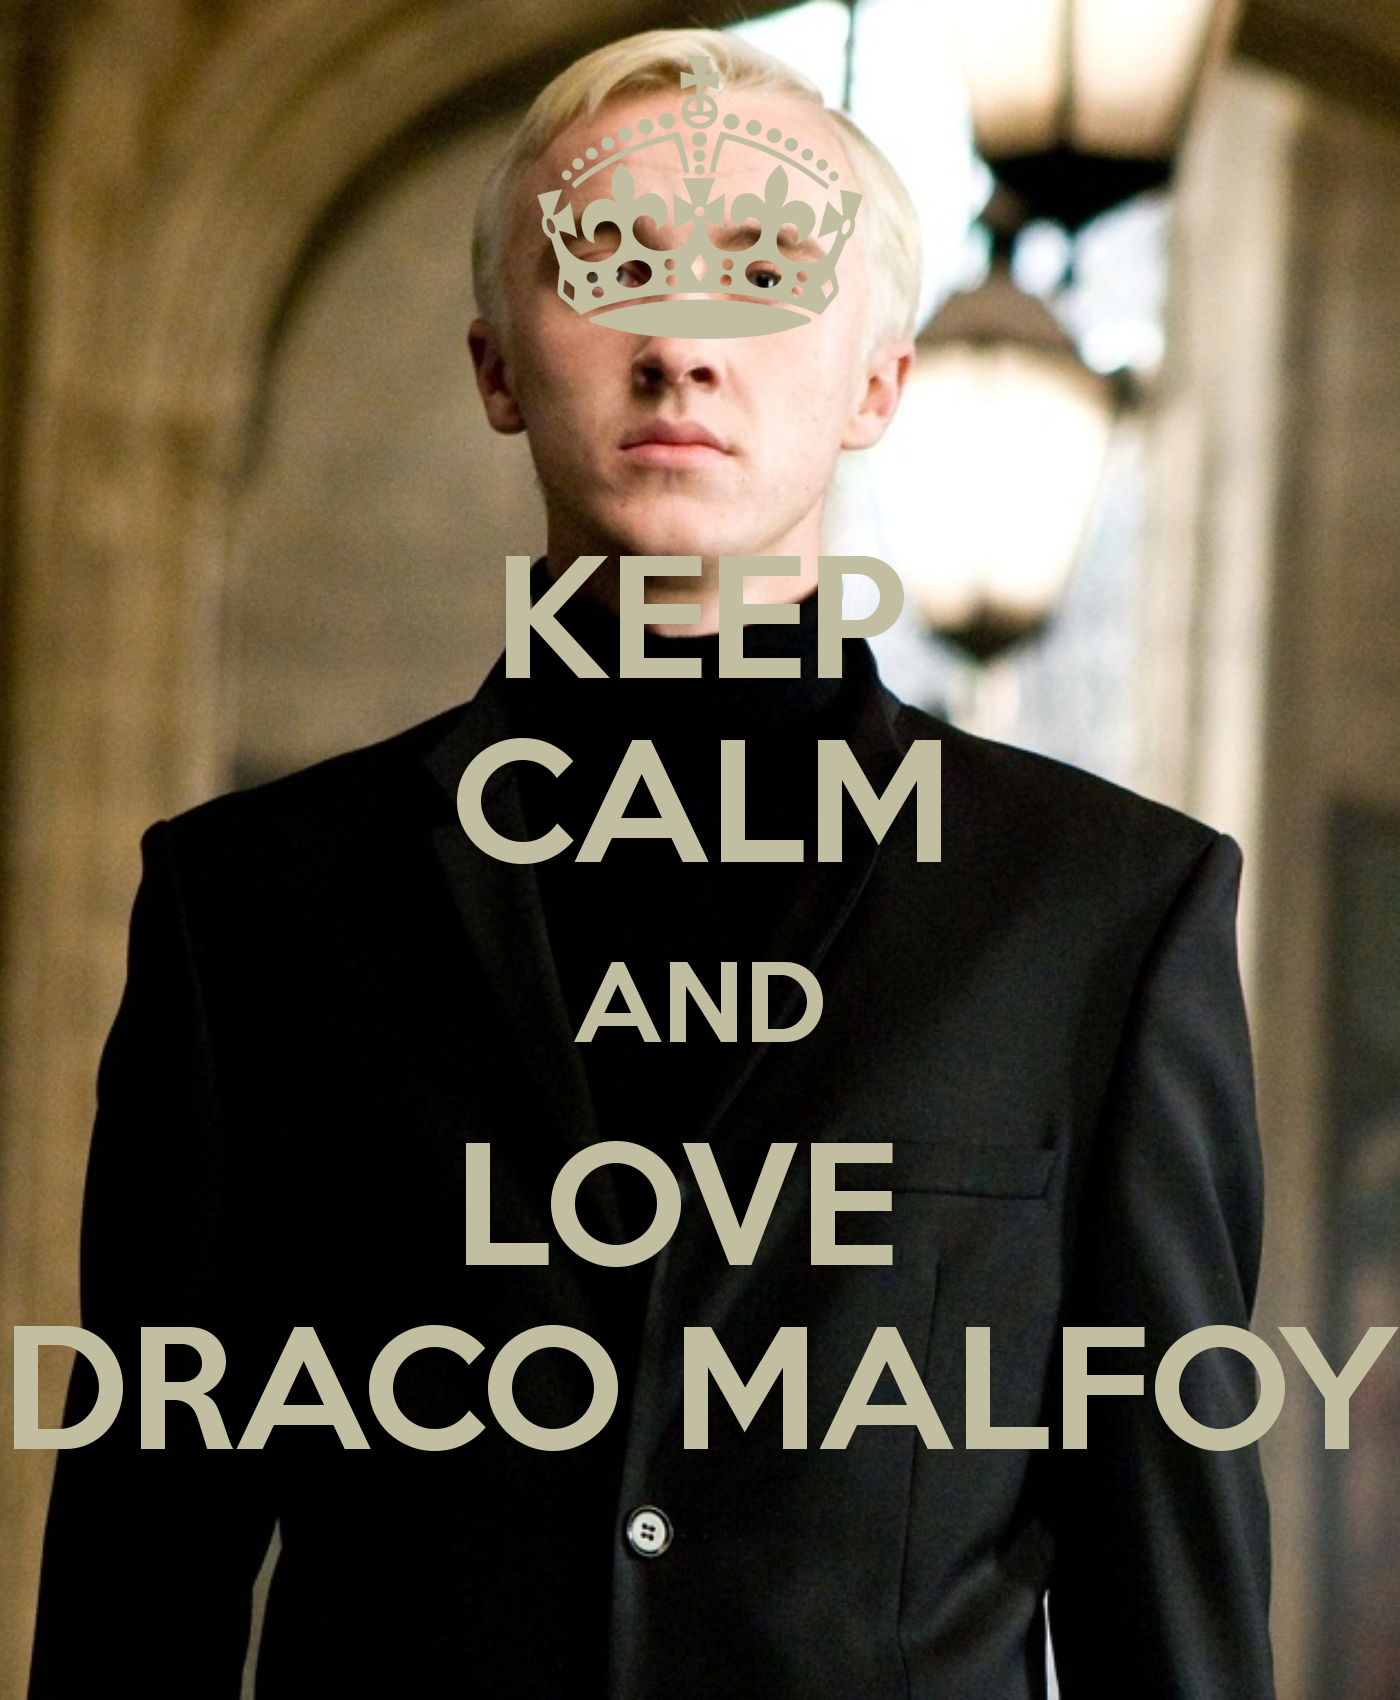 keep-calm-and-love-draco-malfoy-72